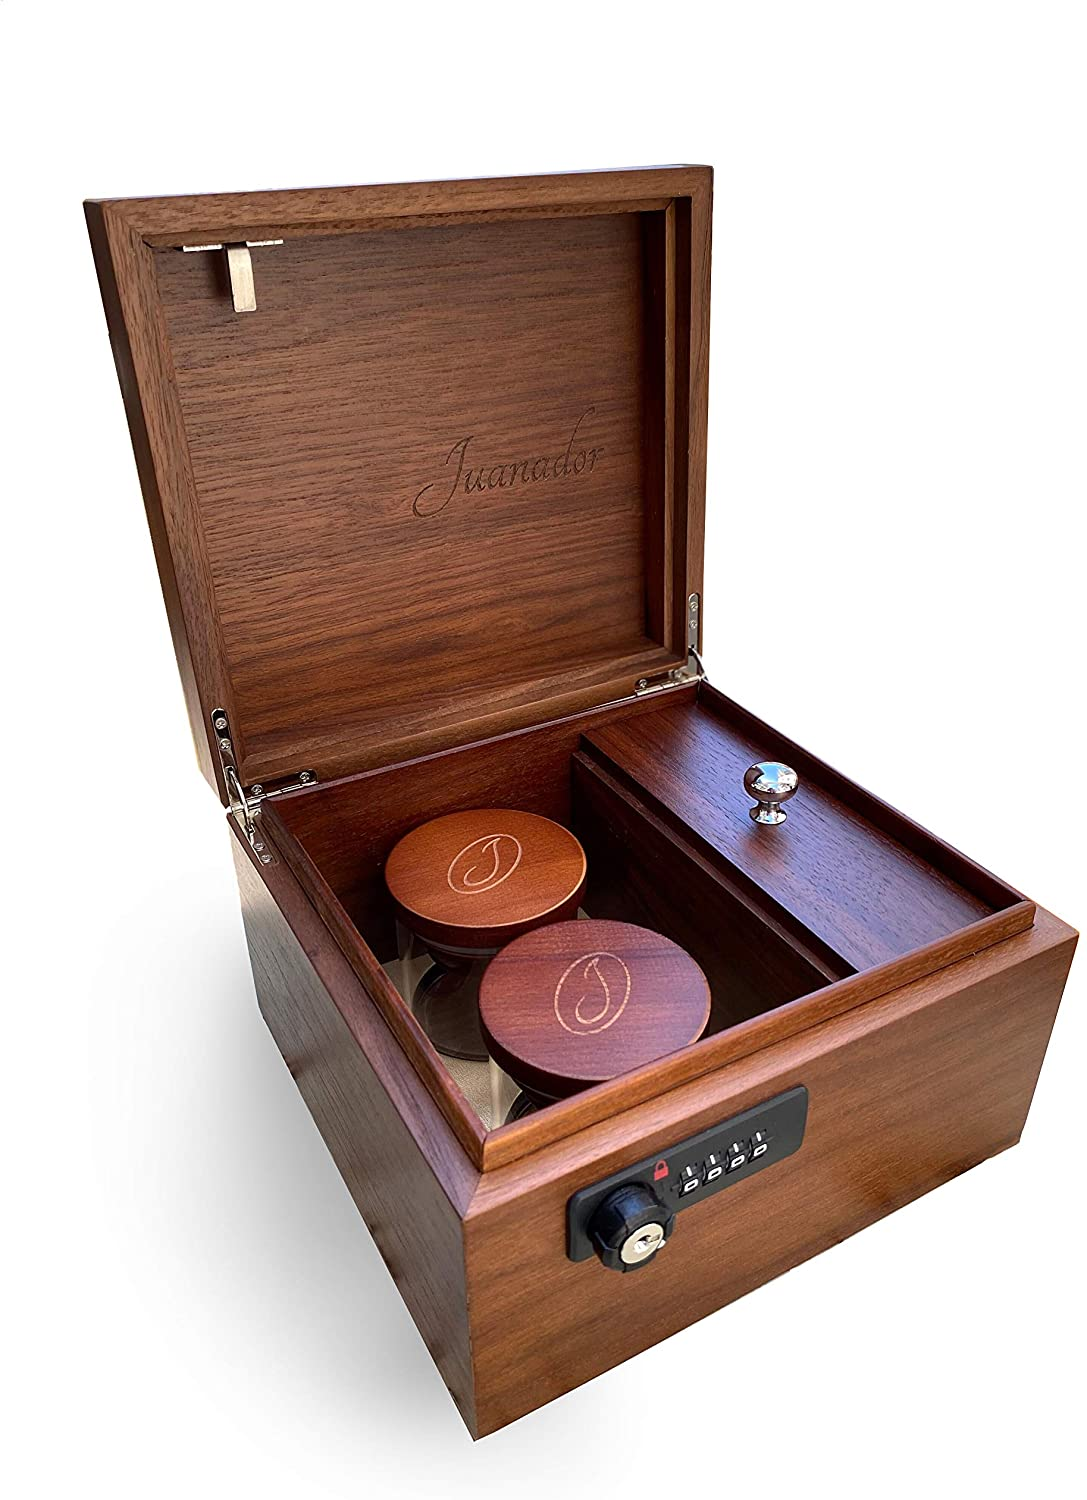 Juanador - Stash Box and Humidor - Beautifully Crafted Walnut with 2 Glass Humidity Jars, Removable Rolling Tray and Secure Combination Lock (2 Strain Case, Walnut)